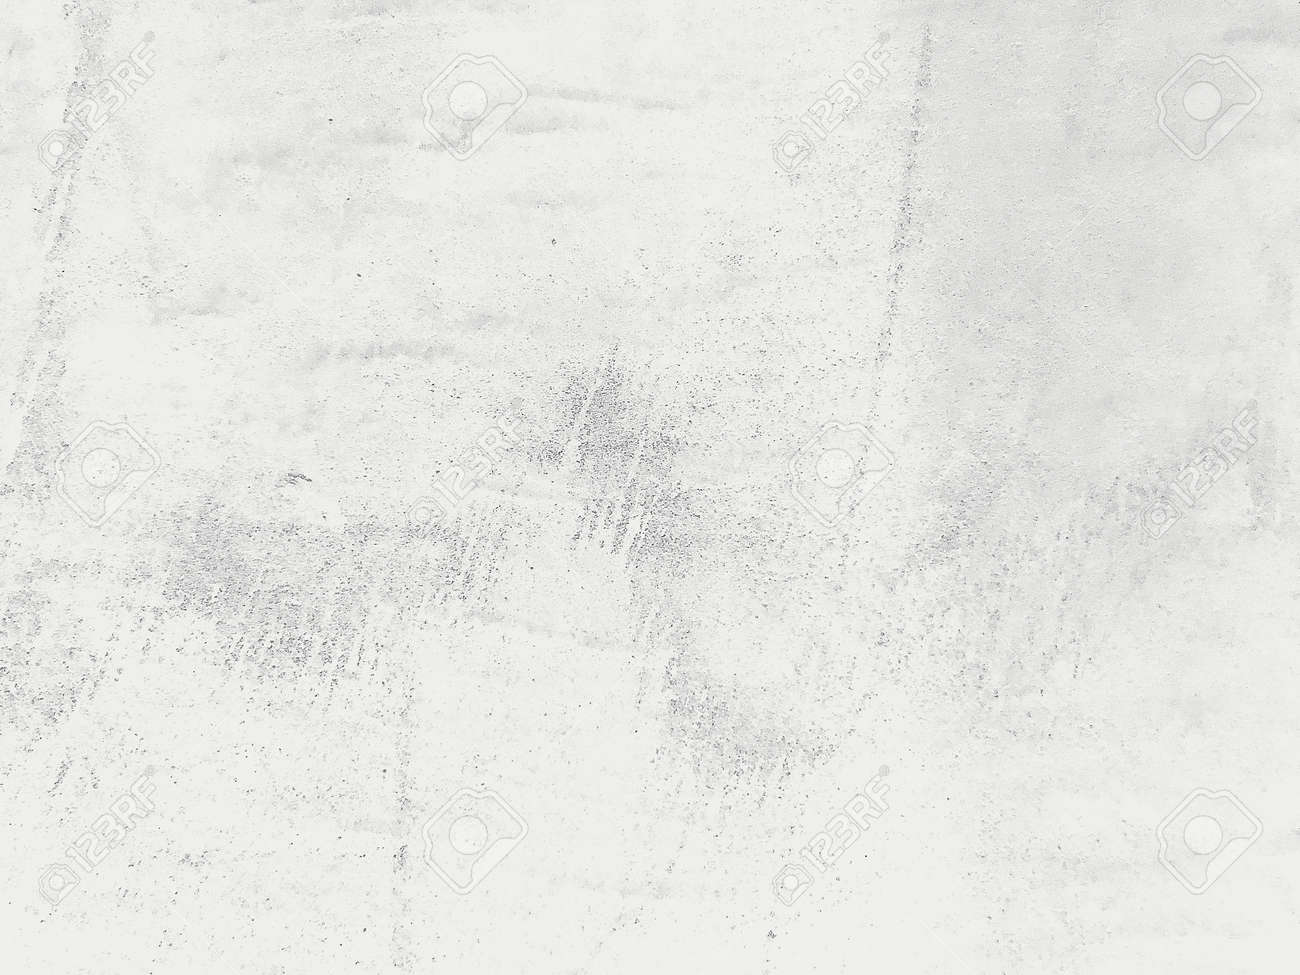 Grungy white background of natural cement or stone old texture as a retro pattern wall. Conceptual wall banner, grunge, material,or construction. - 156970223